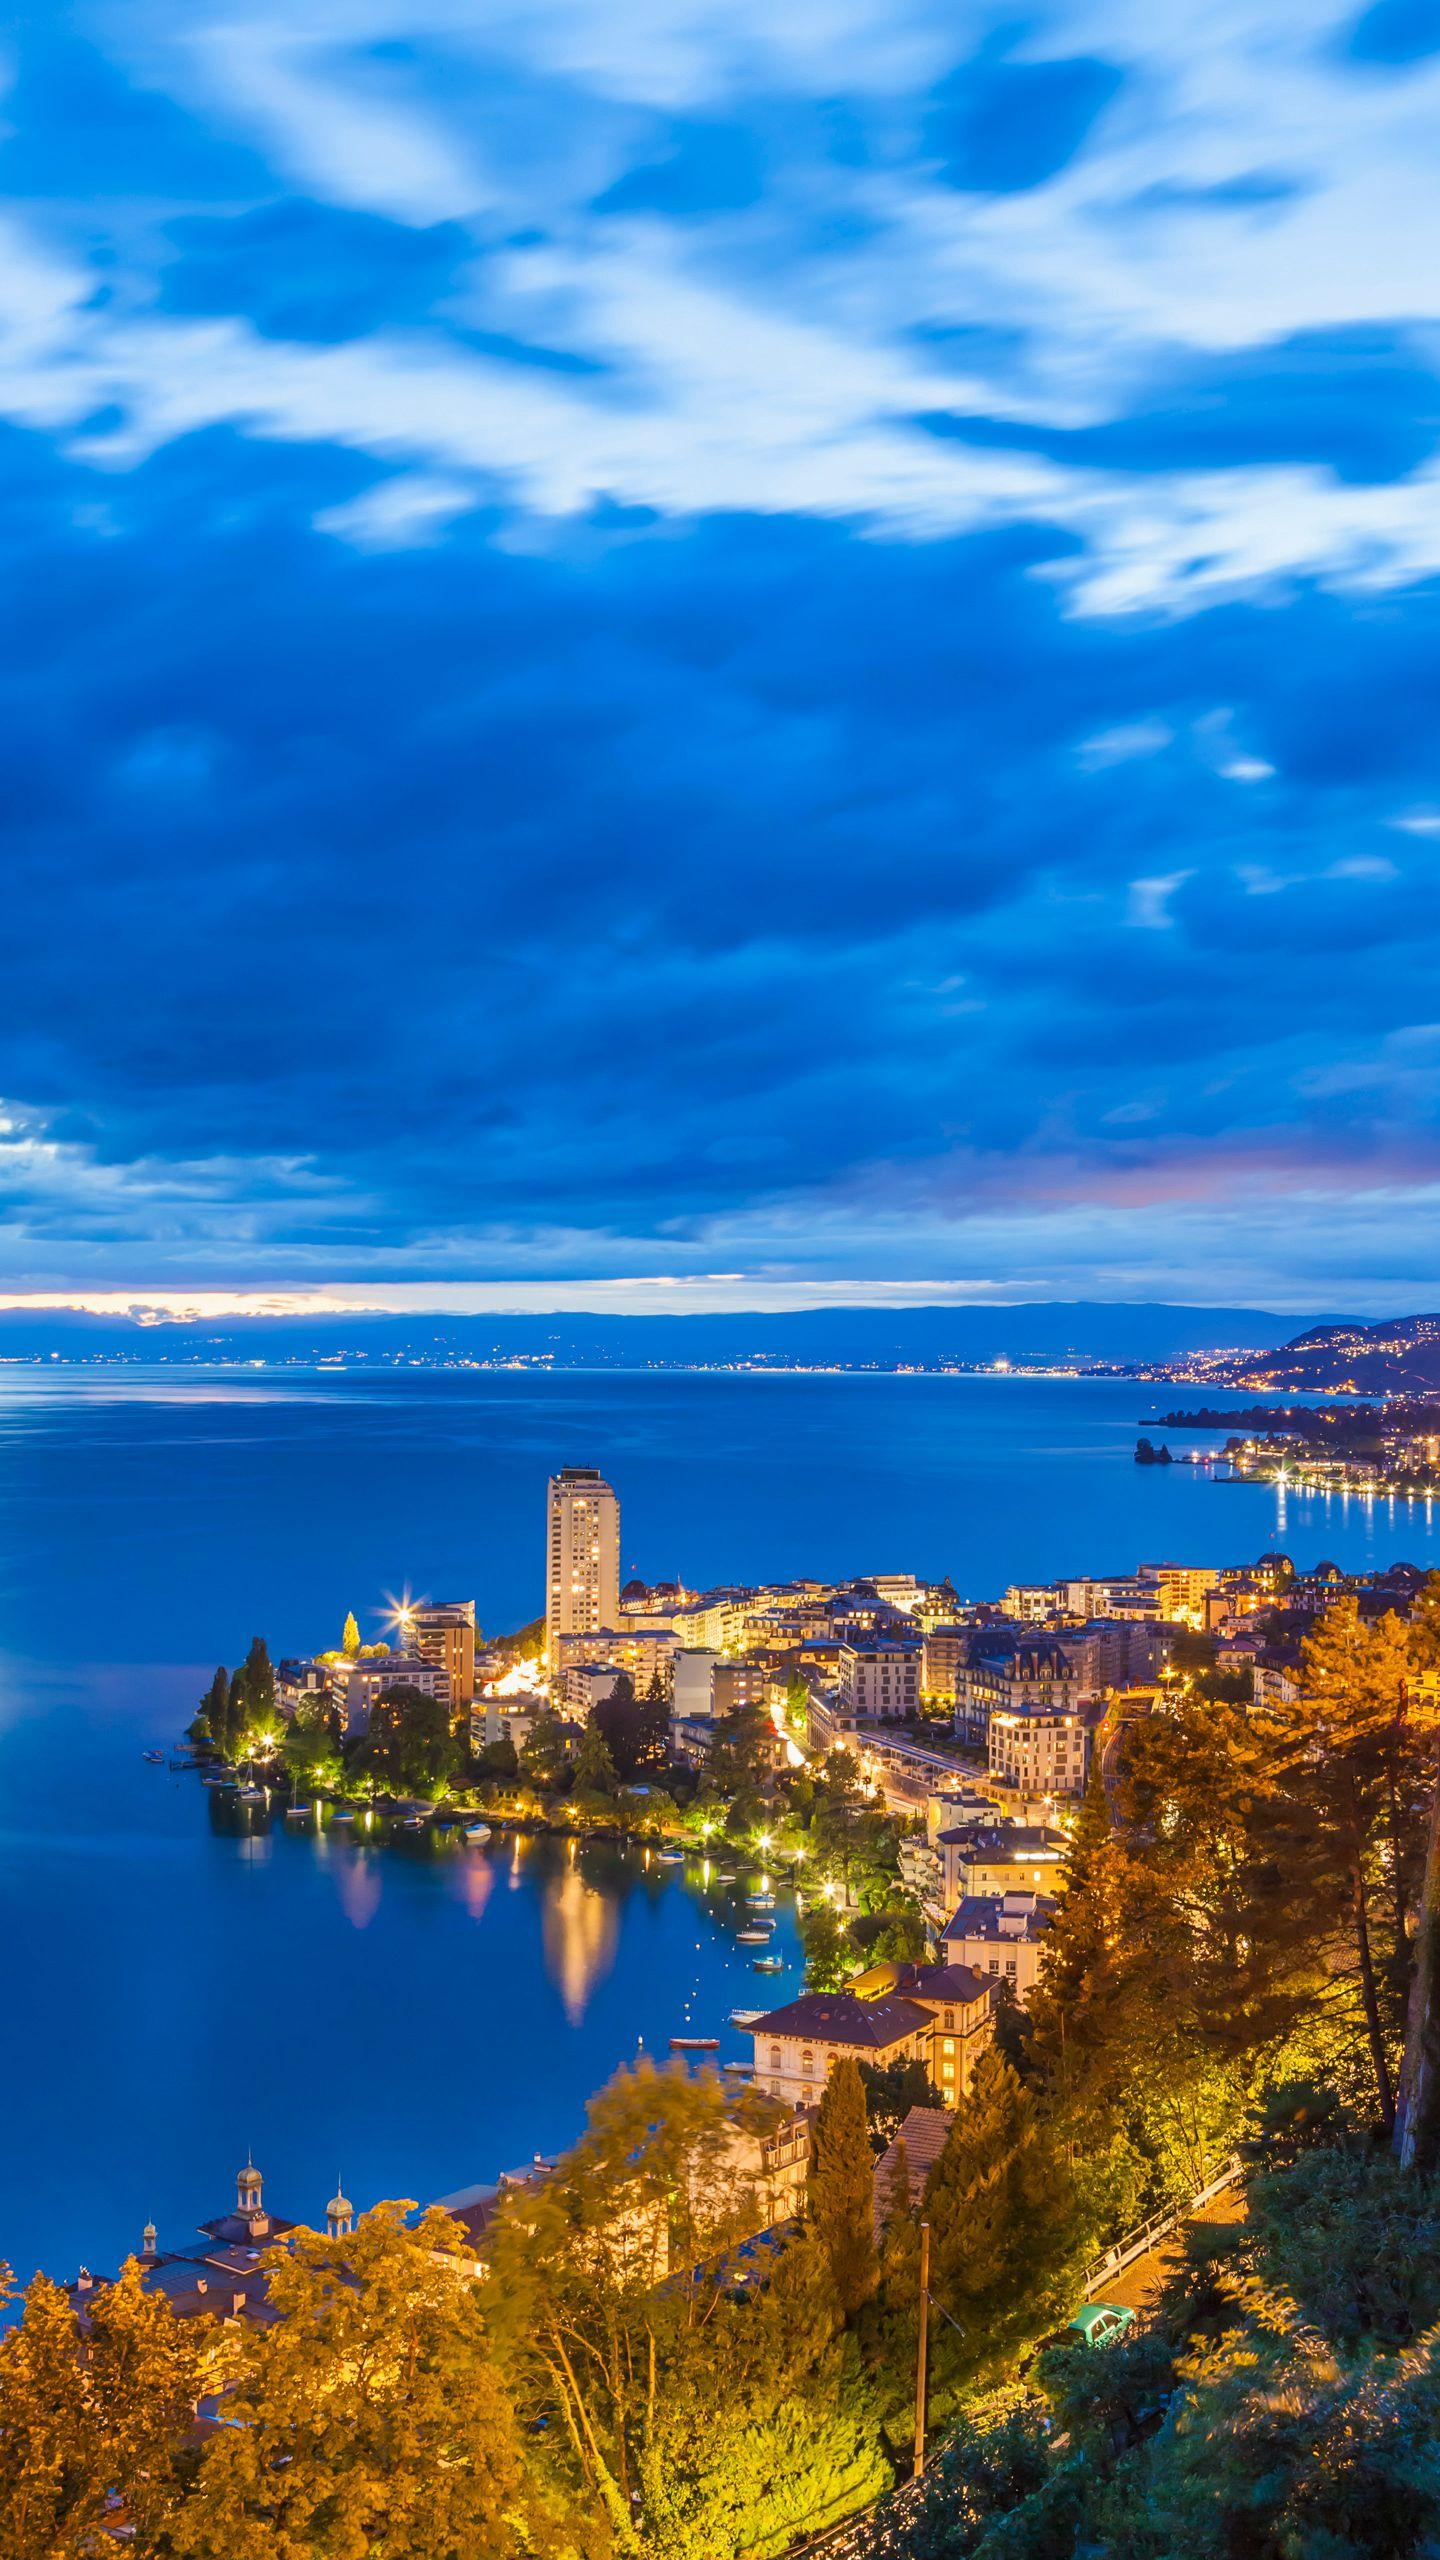 Switzerland - Montreux. With a natural romance, it is an idyllic small town situated on the shores of the vast Lake Geneva.